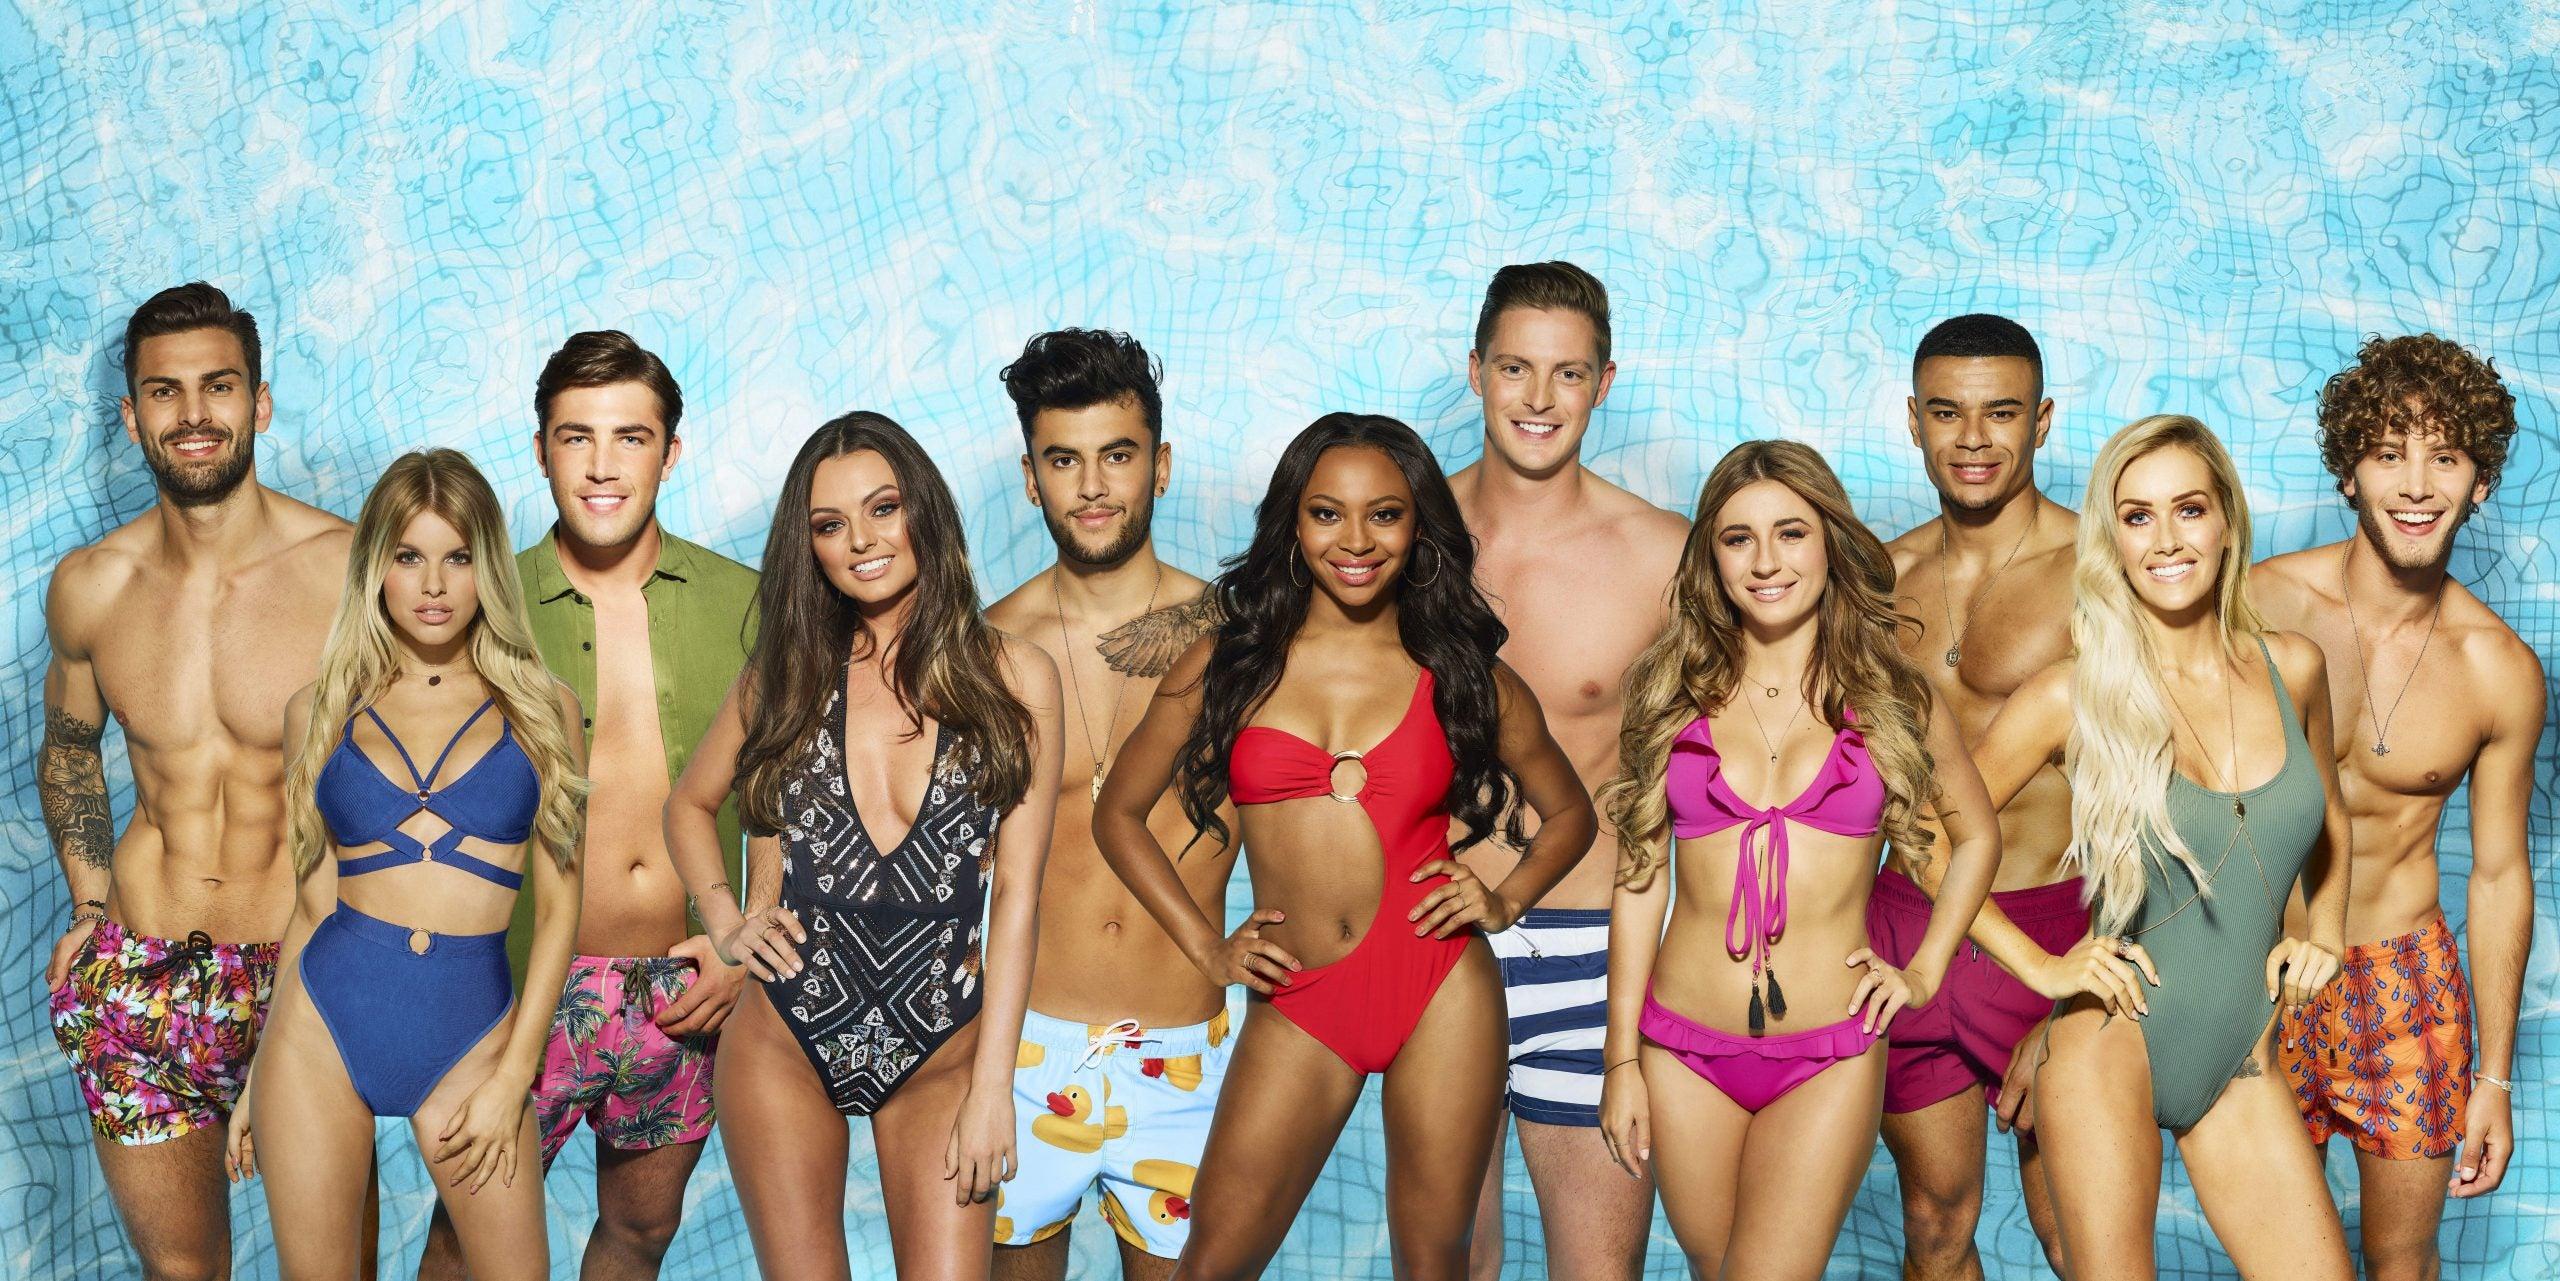 Here are 11 things you could have done with the time you spent watching Love Island